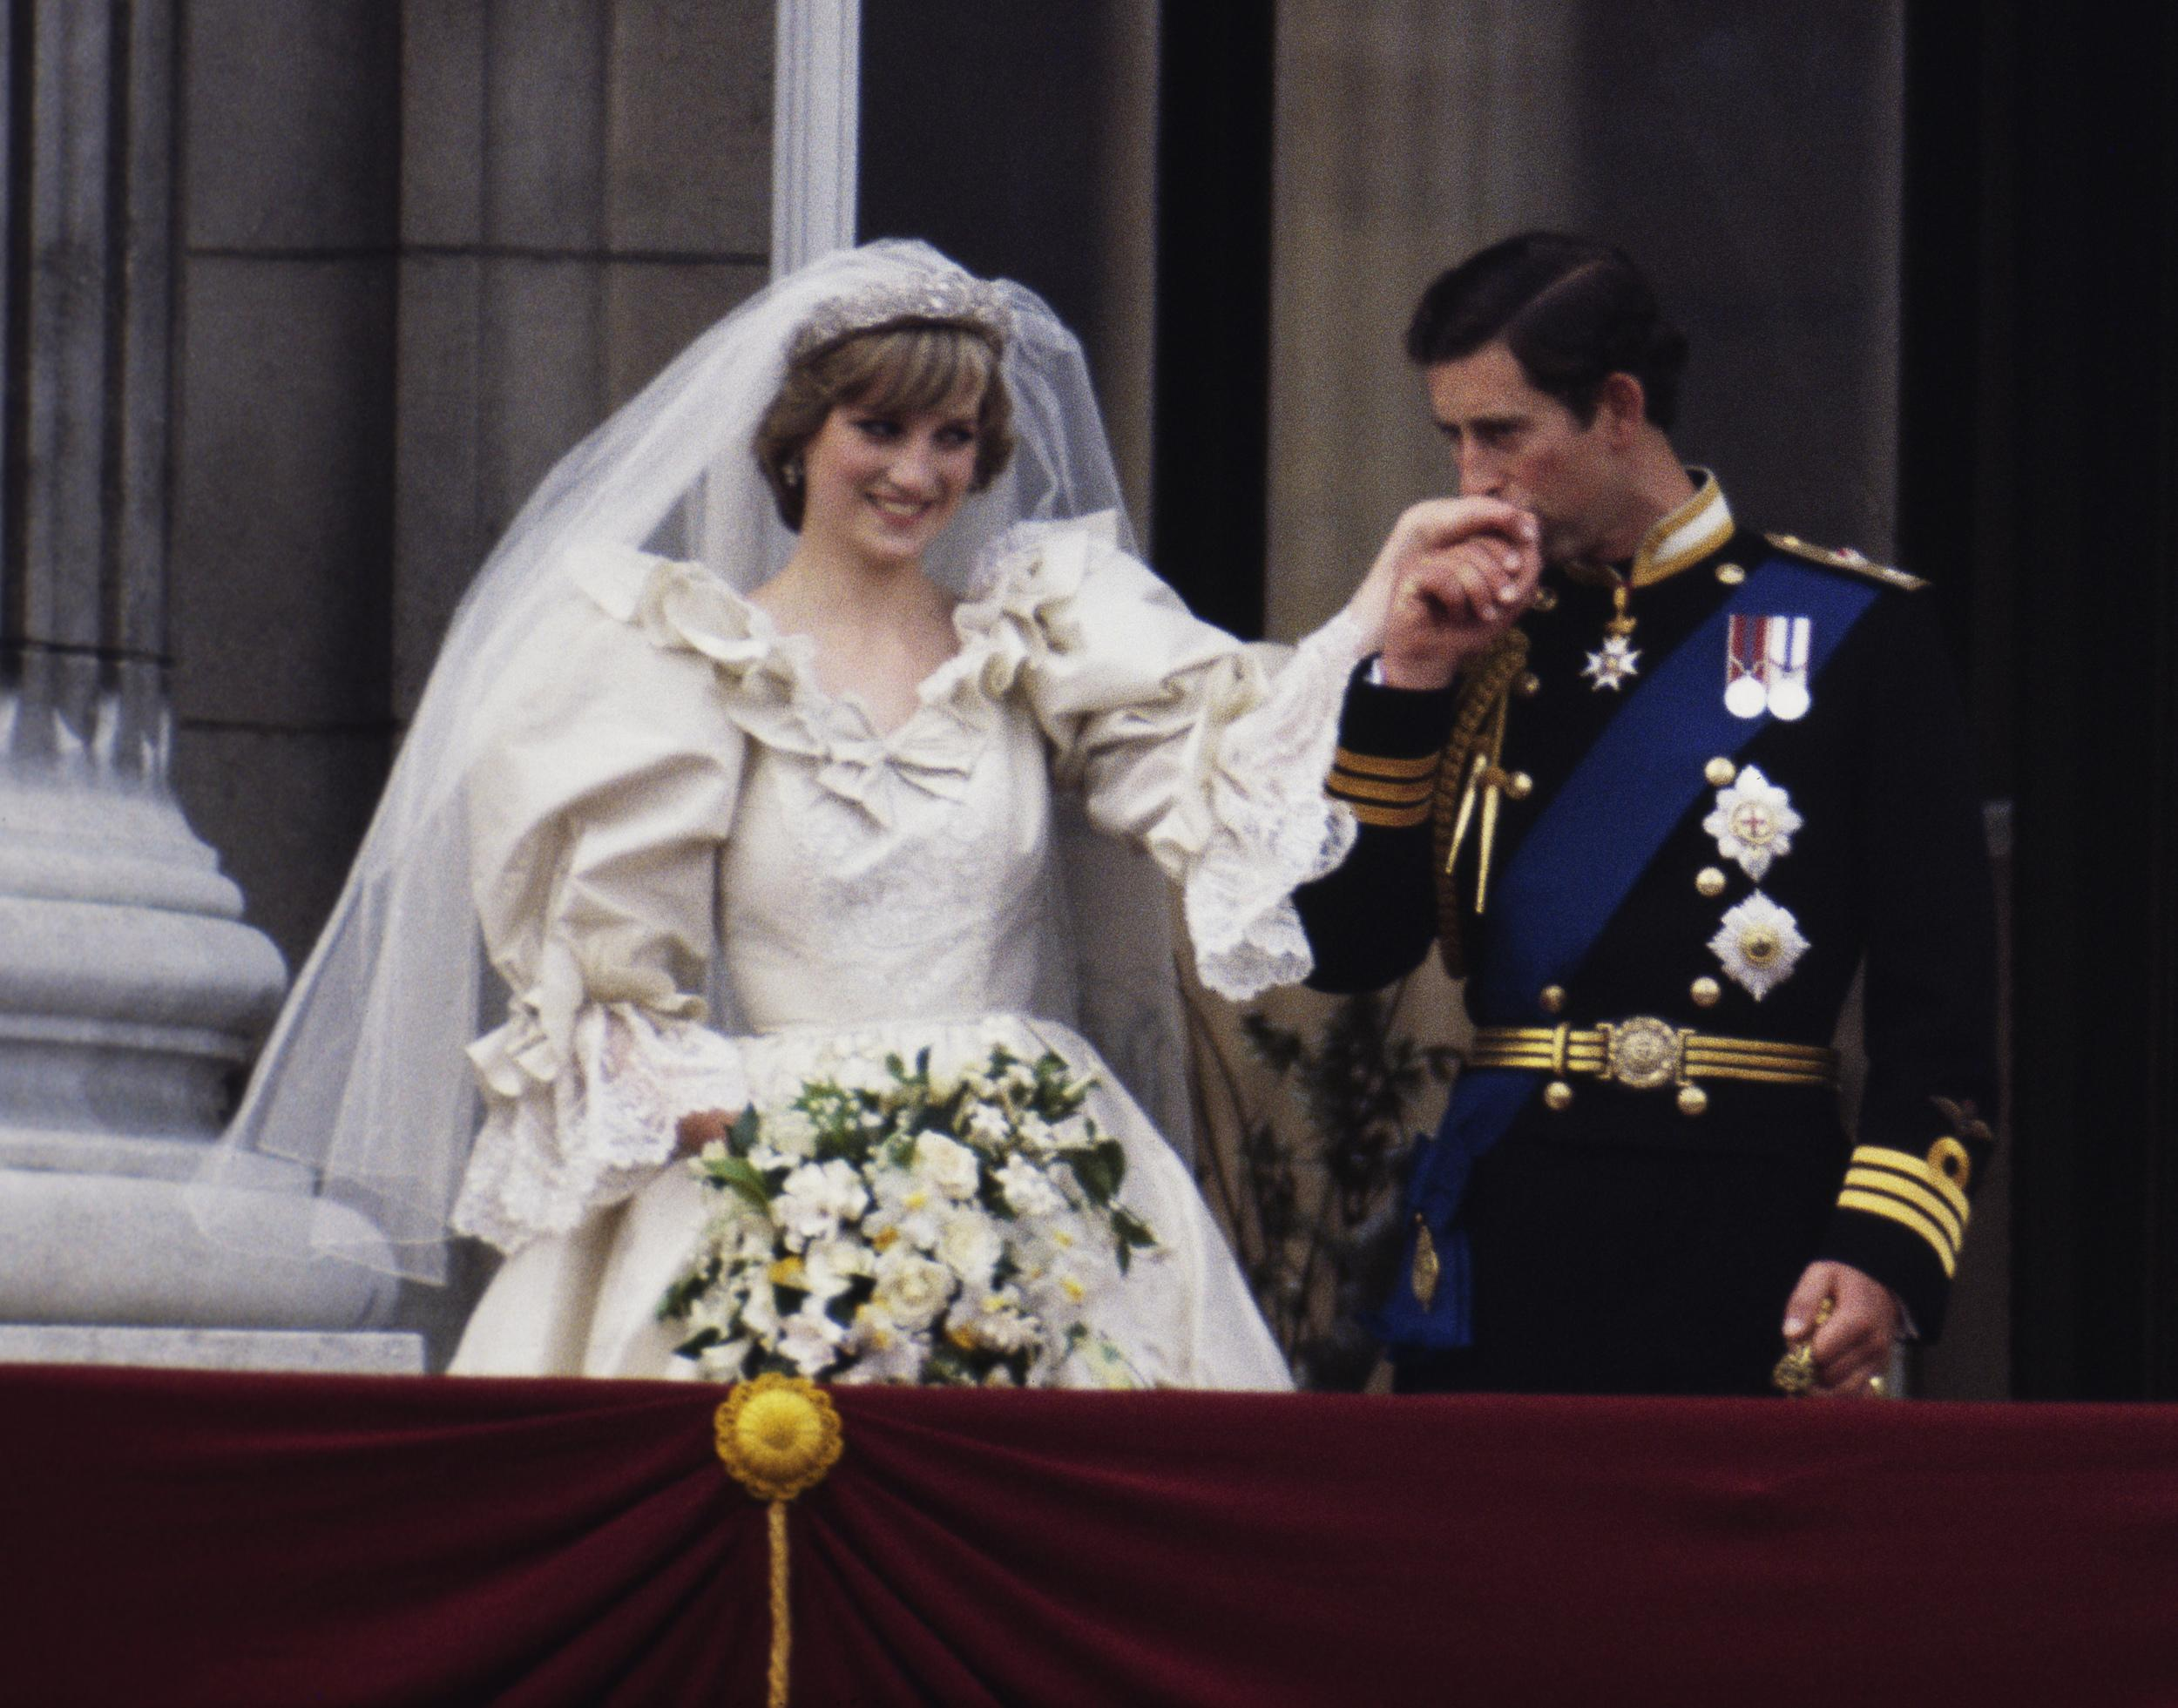 Prince Charles and Lady Diana Spencer on their wedding day.